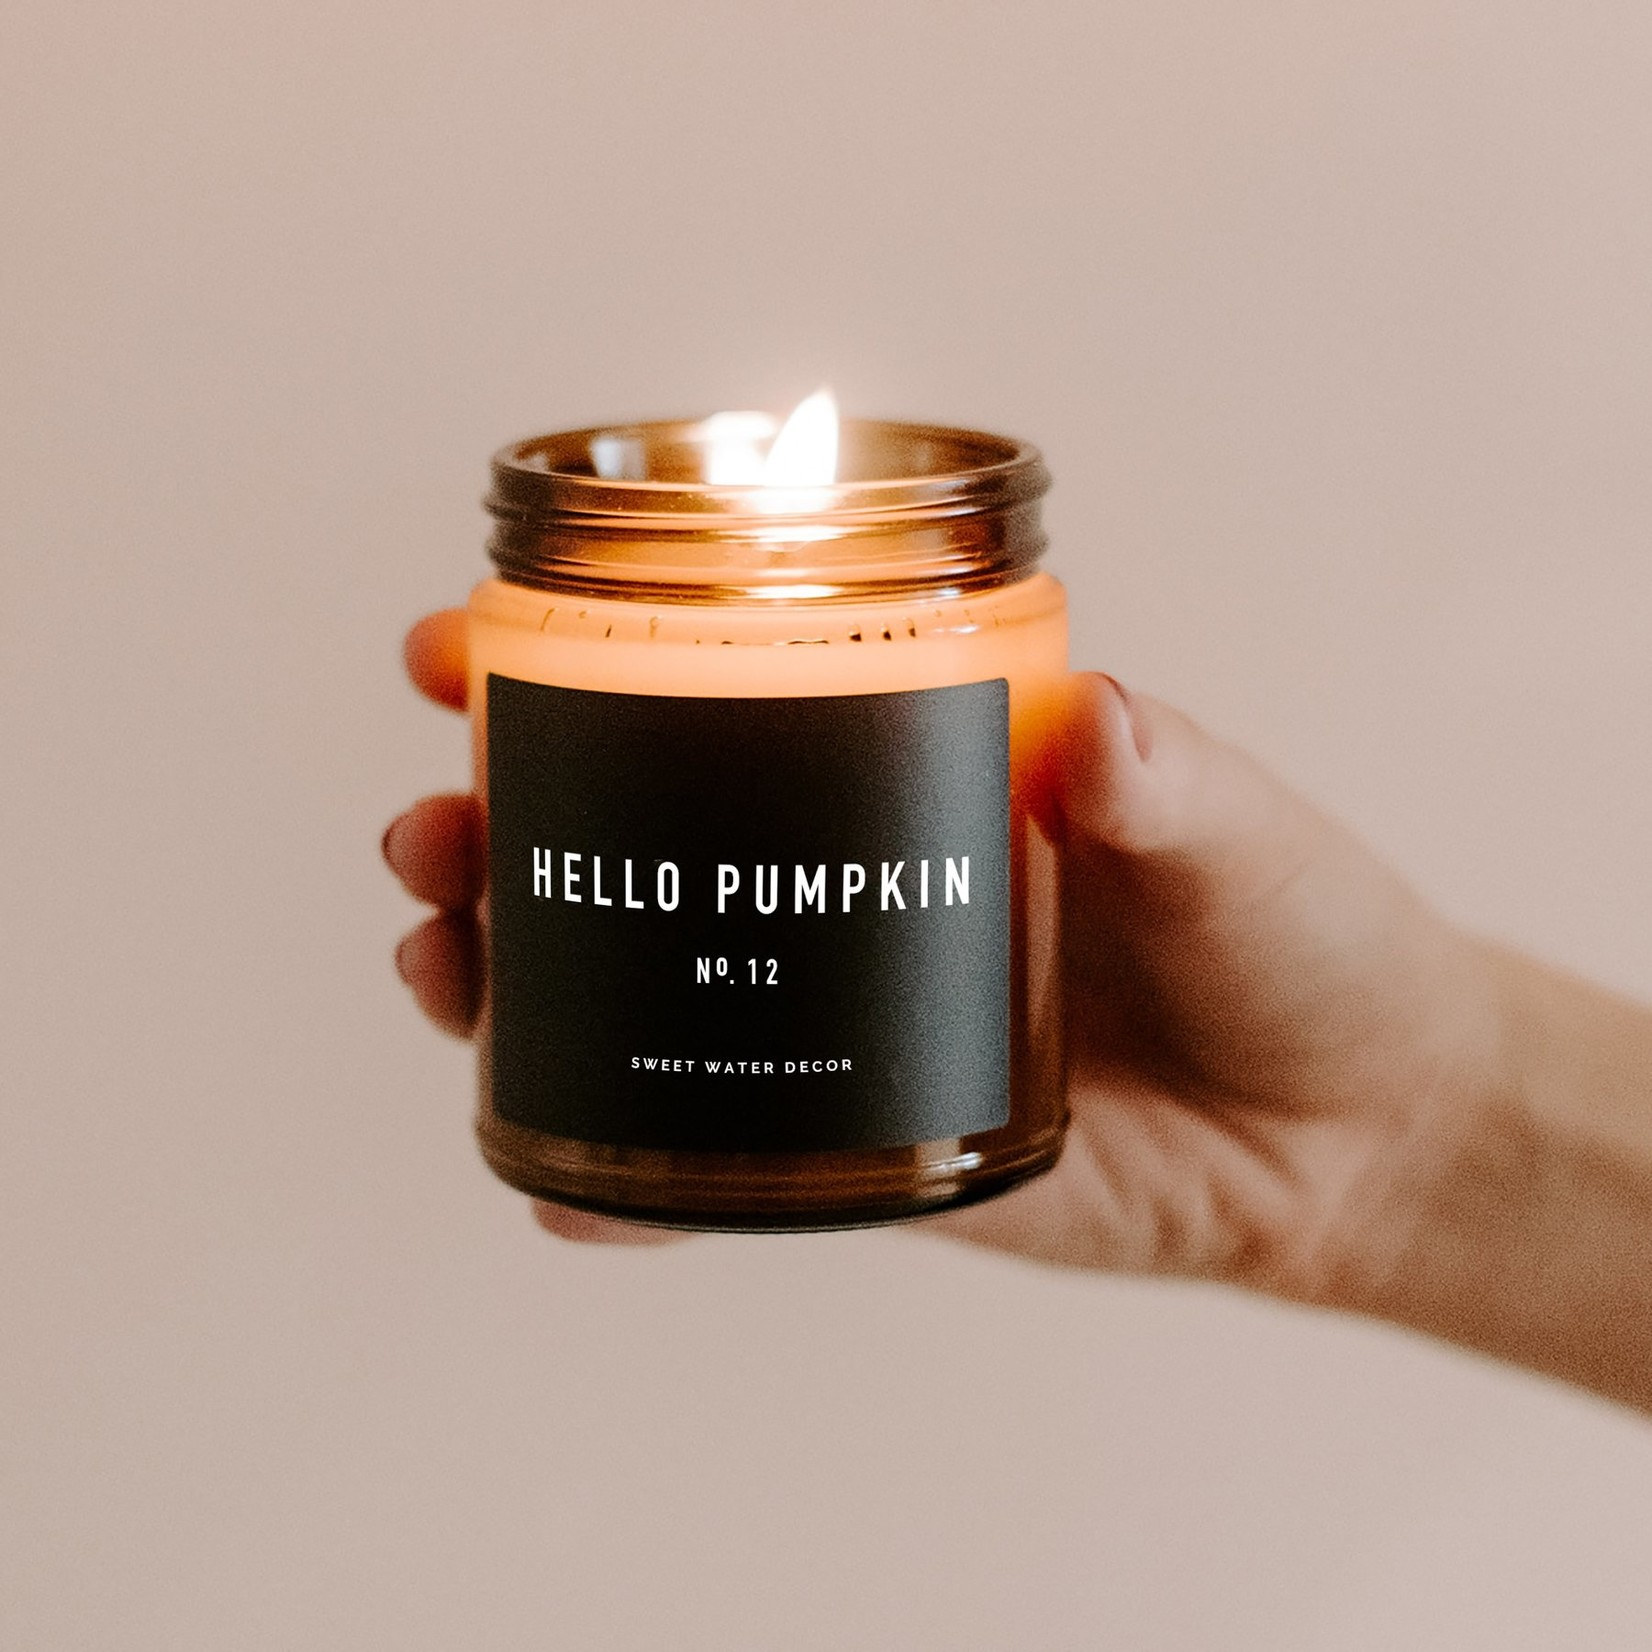 Sweet Water Decor Hello Pumpkin Soy Candle